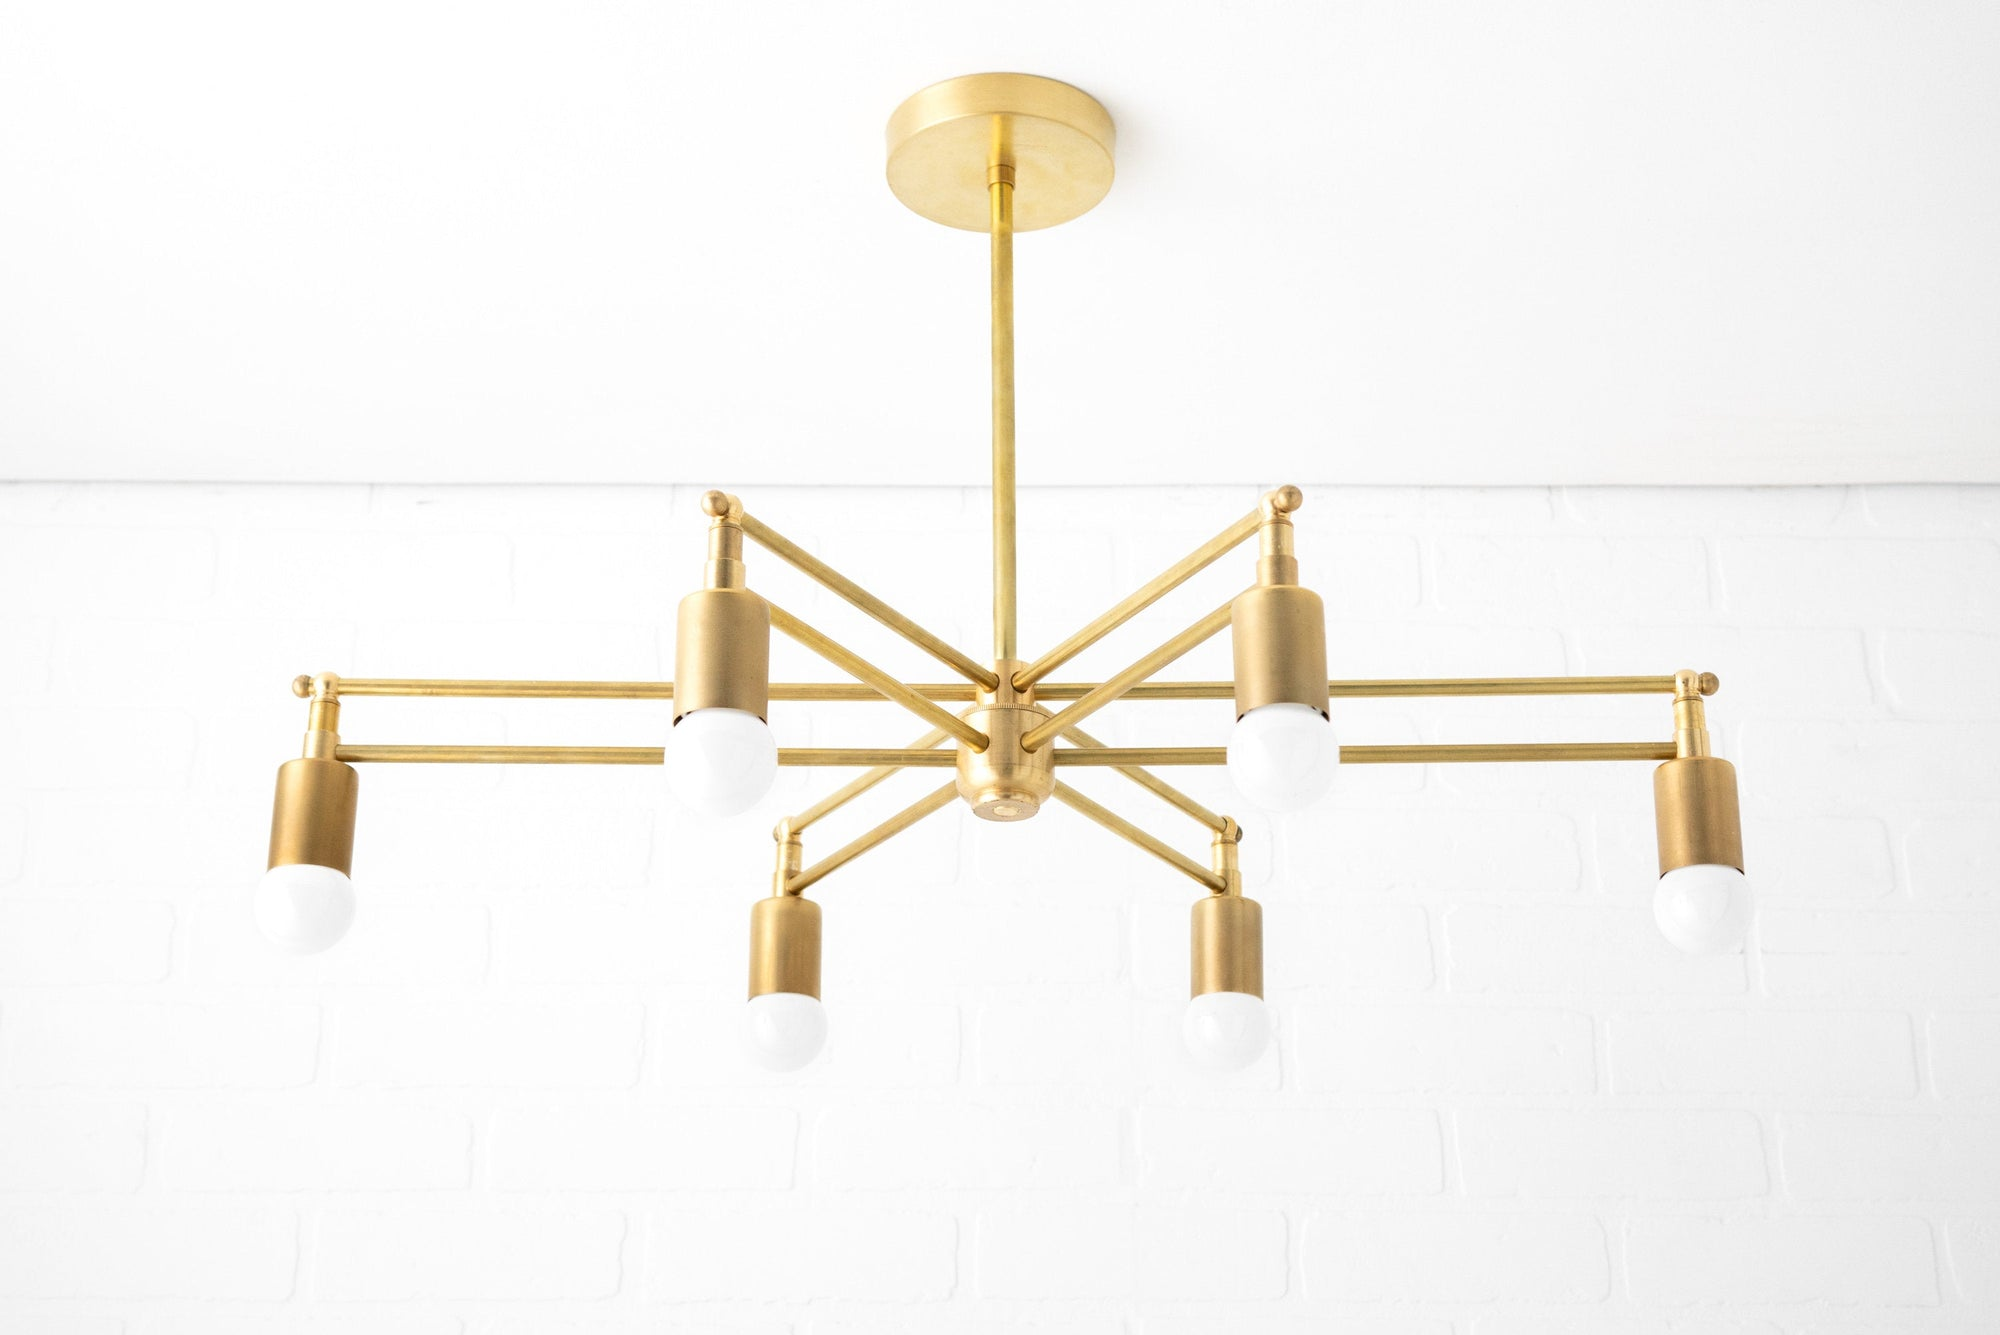 Chandelier Model No 0072 Peared Creation